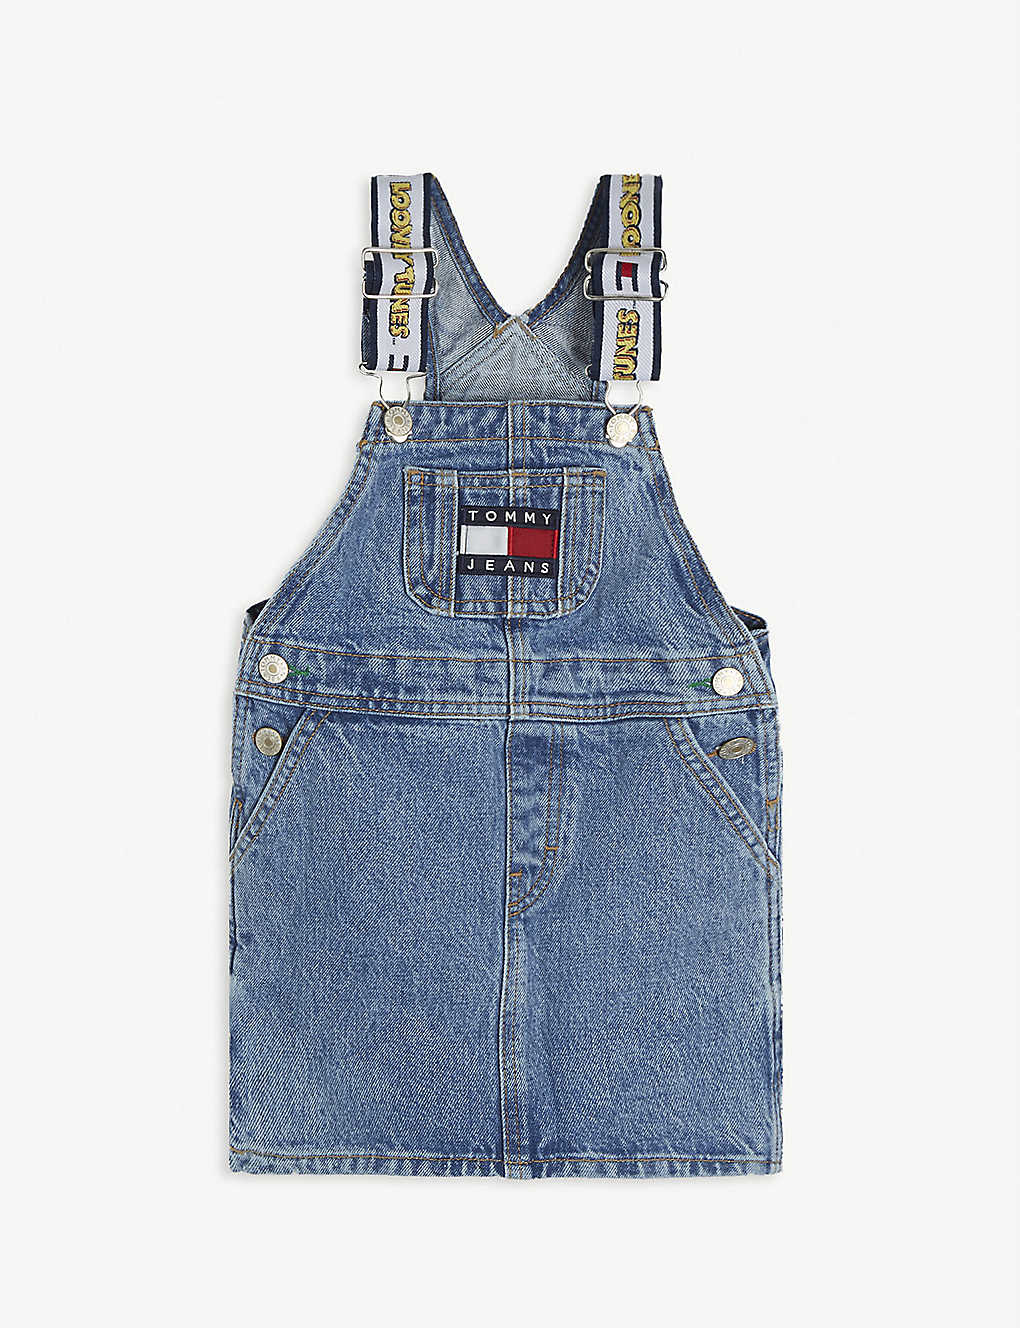 TOMMY HILFIGER: Tommy Jeans x Looney Tunes denim pinafore dress 4-12 years